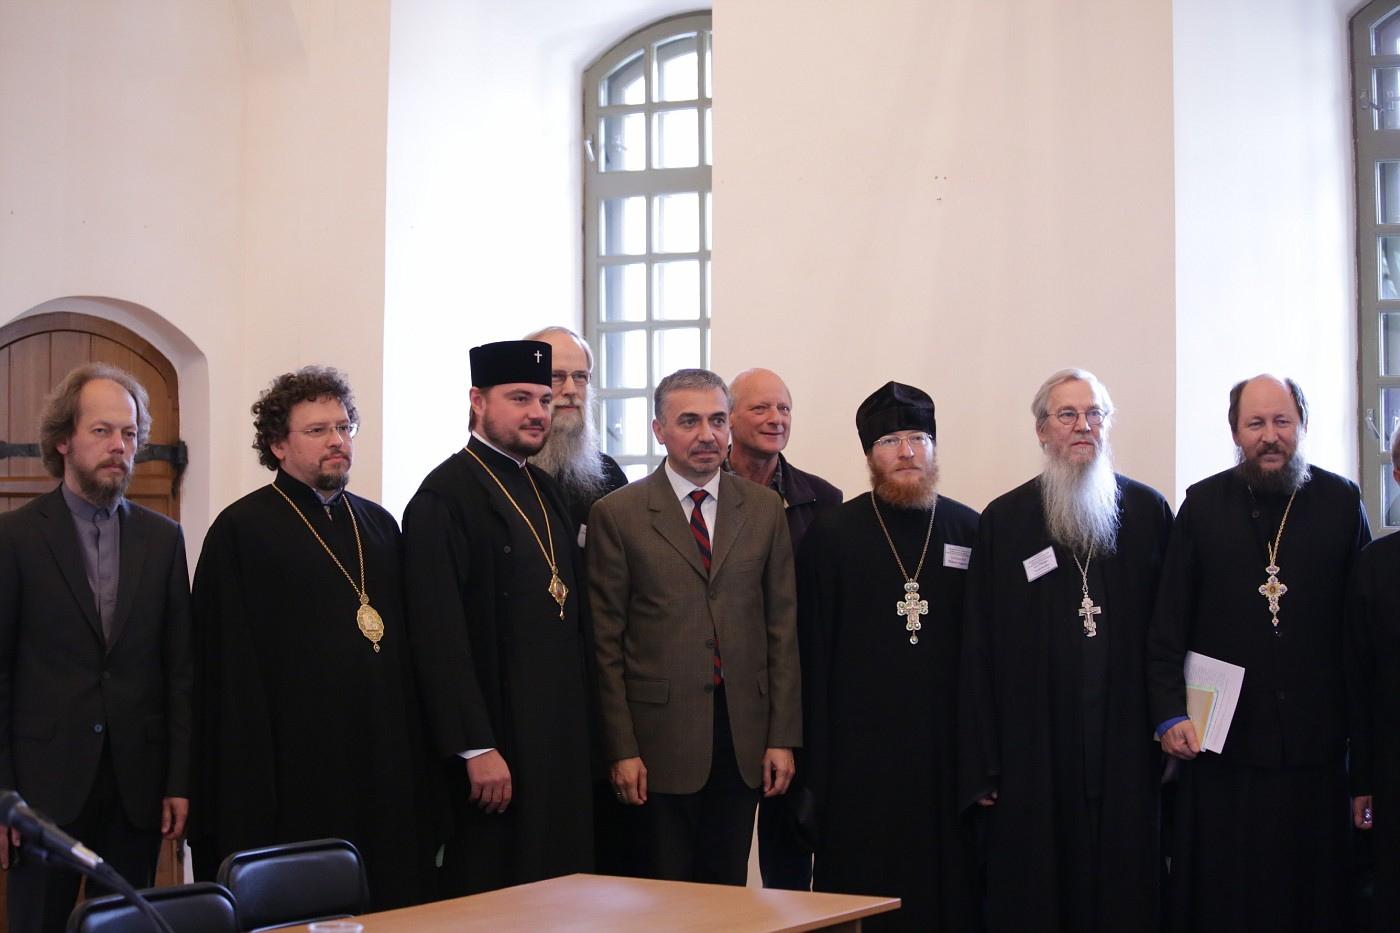 Group photo with Orthodox Bishops and Fathers from Chevetogne Abbey (Belgium)